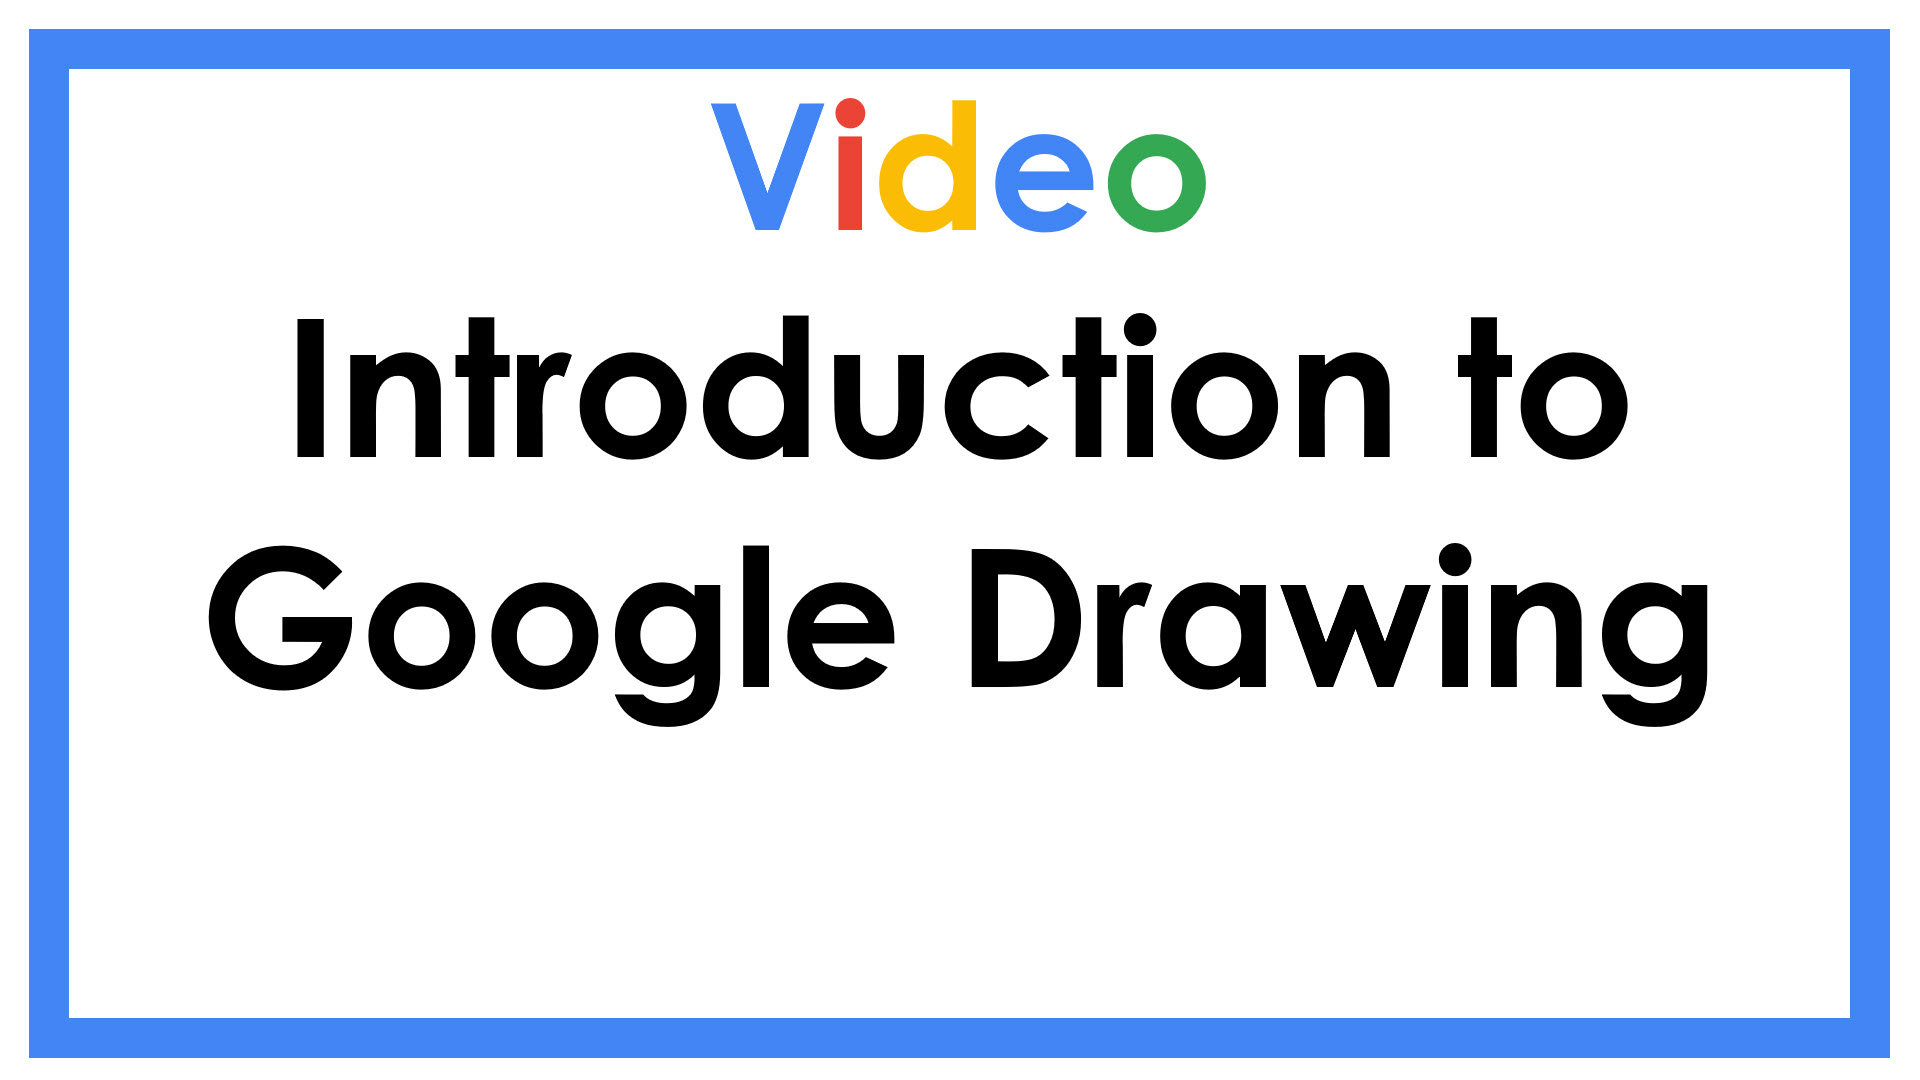 Video Introduction to Google Drawing